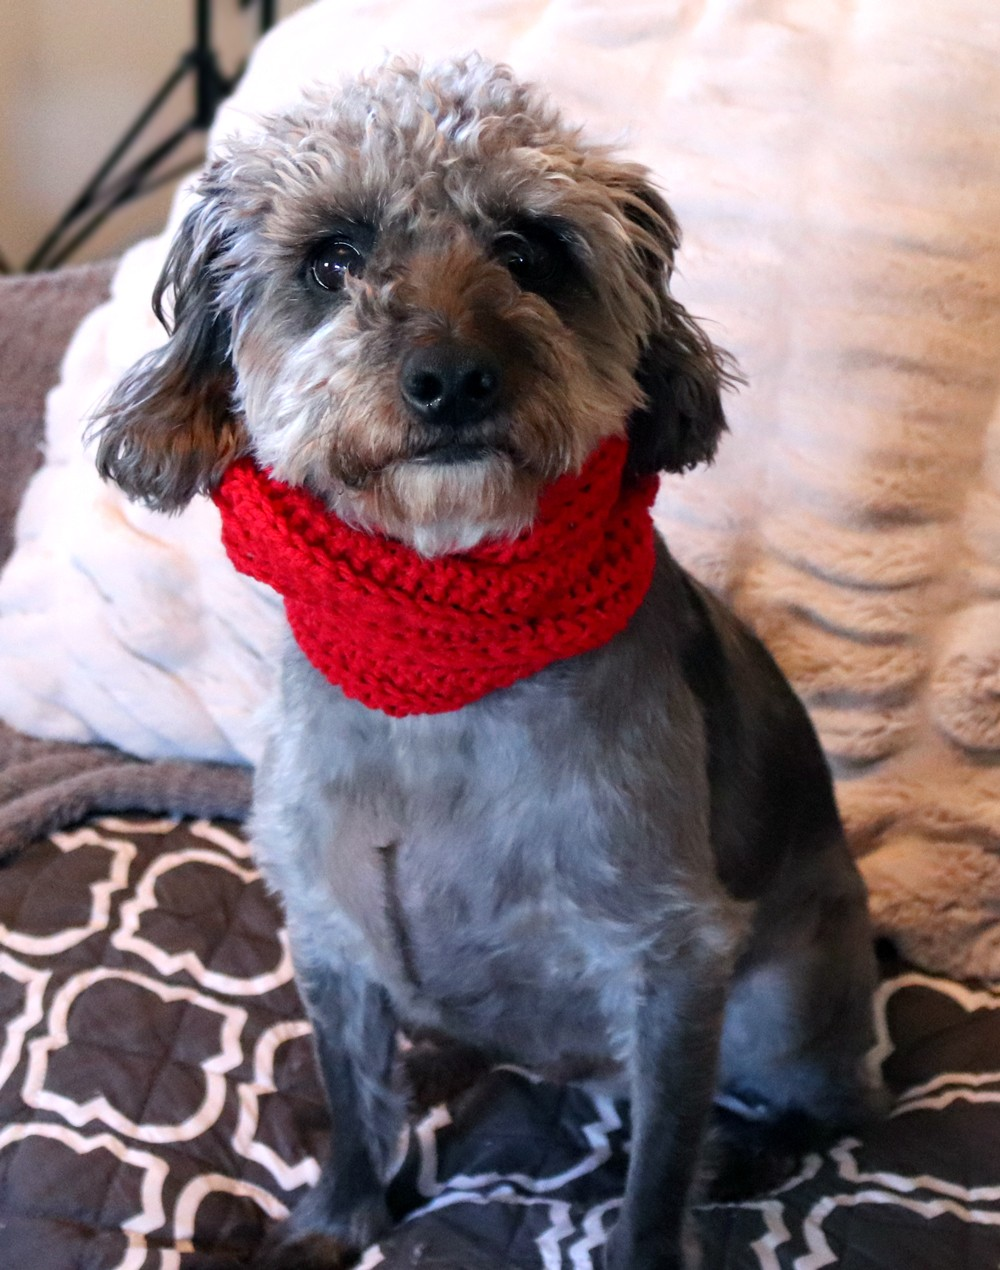 Skarf Dog Scarf Review - Valentines Day Gifts for Pet Lovers by popular Los Angeles cruelty free blogger My Beauty Bunny